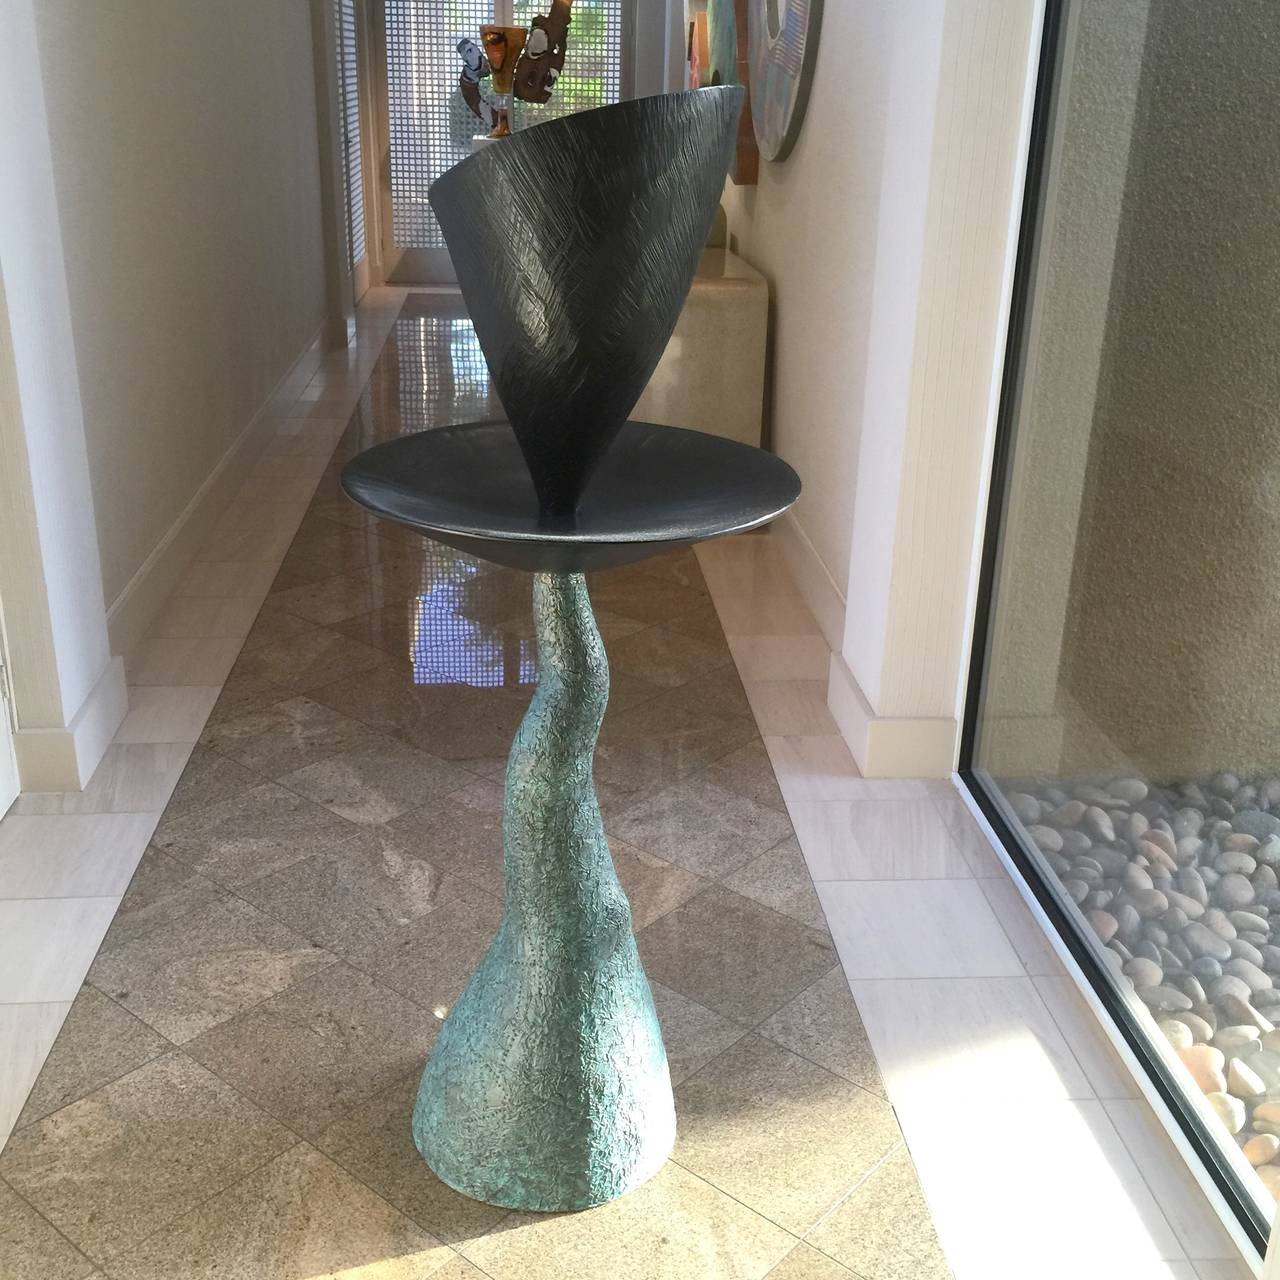 Wendell Castle Pedestal Sculpture For Sale At 1stdibs